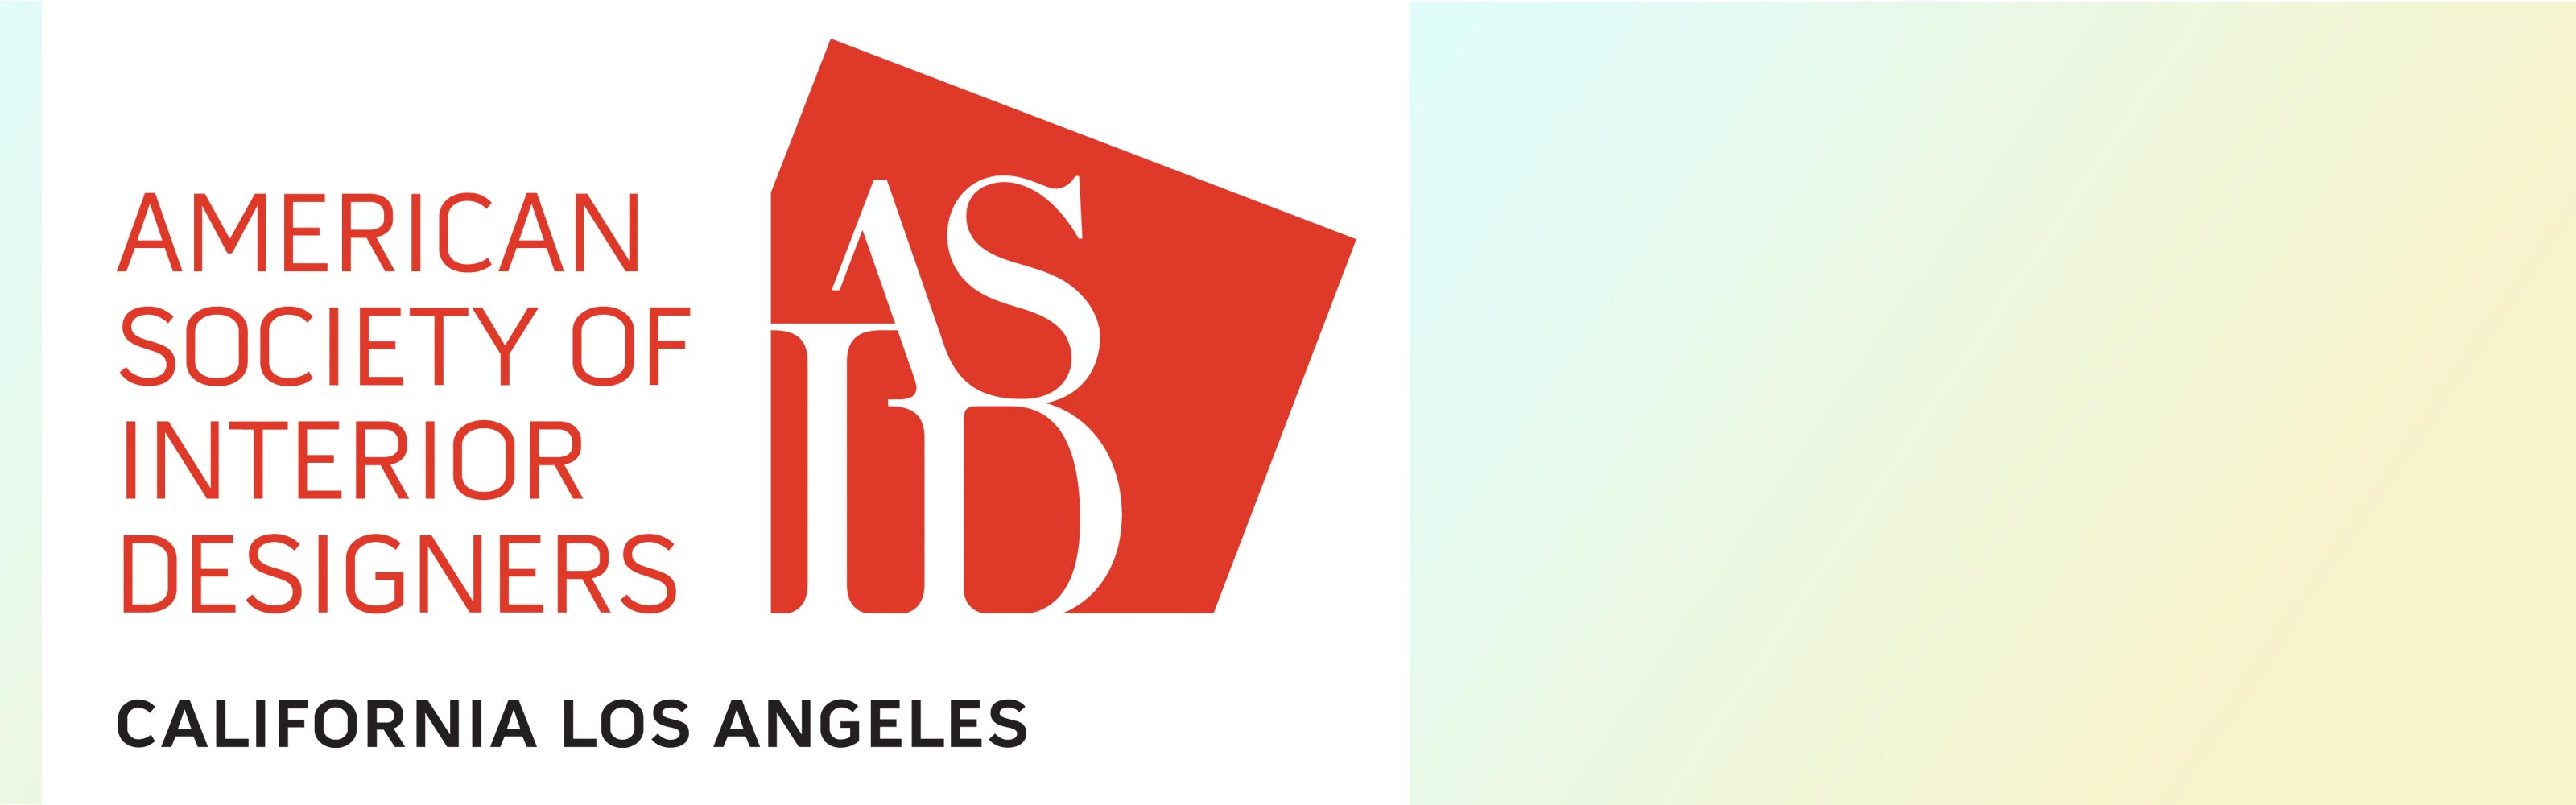 ASID/Los Angeles - Pacific Design Center